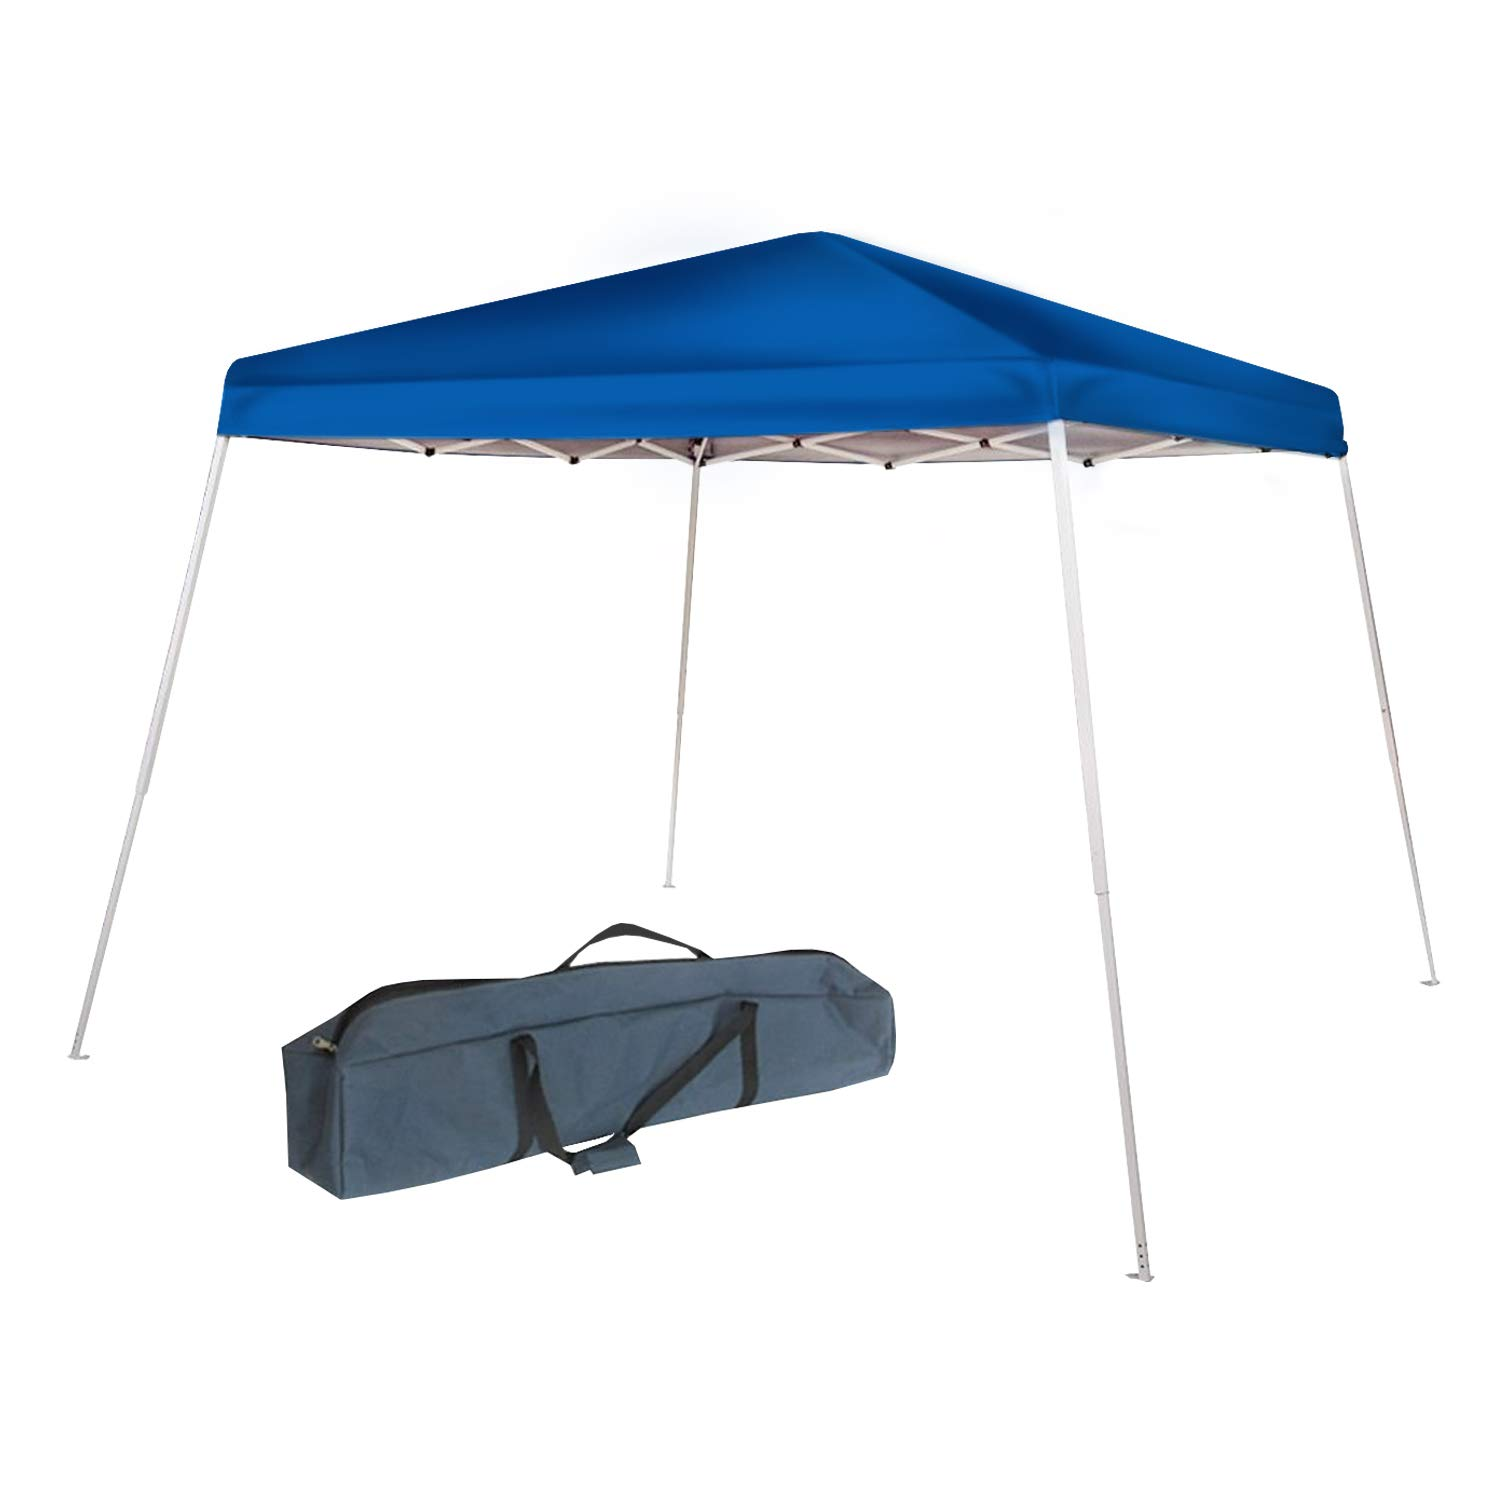 Abba Patio 8 x 8-Feet Slant Leg Instant Easy Pop Up Folding Canopy with  Carry Bag, Blue